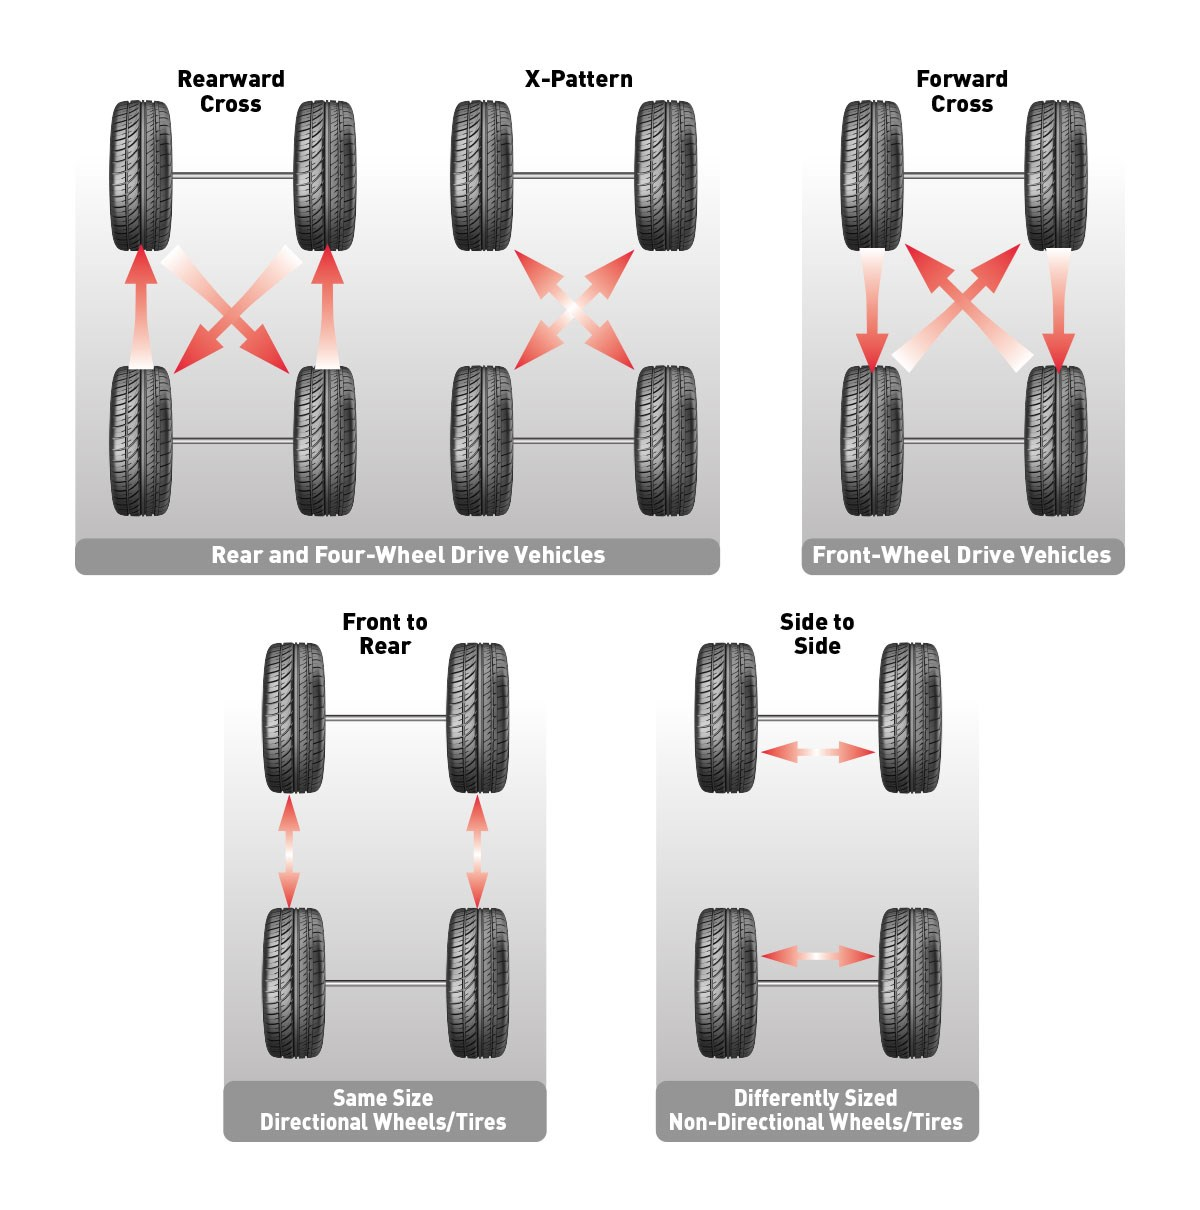 Width Of Tires From Side To Side On Travel Trailer